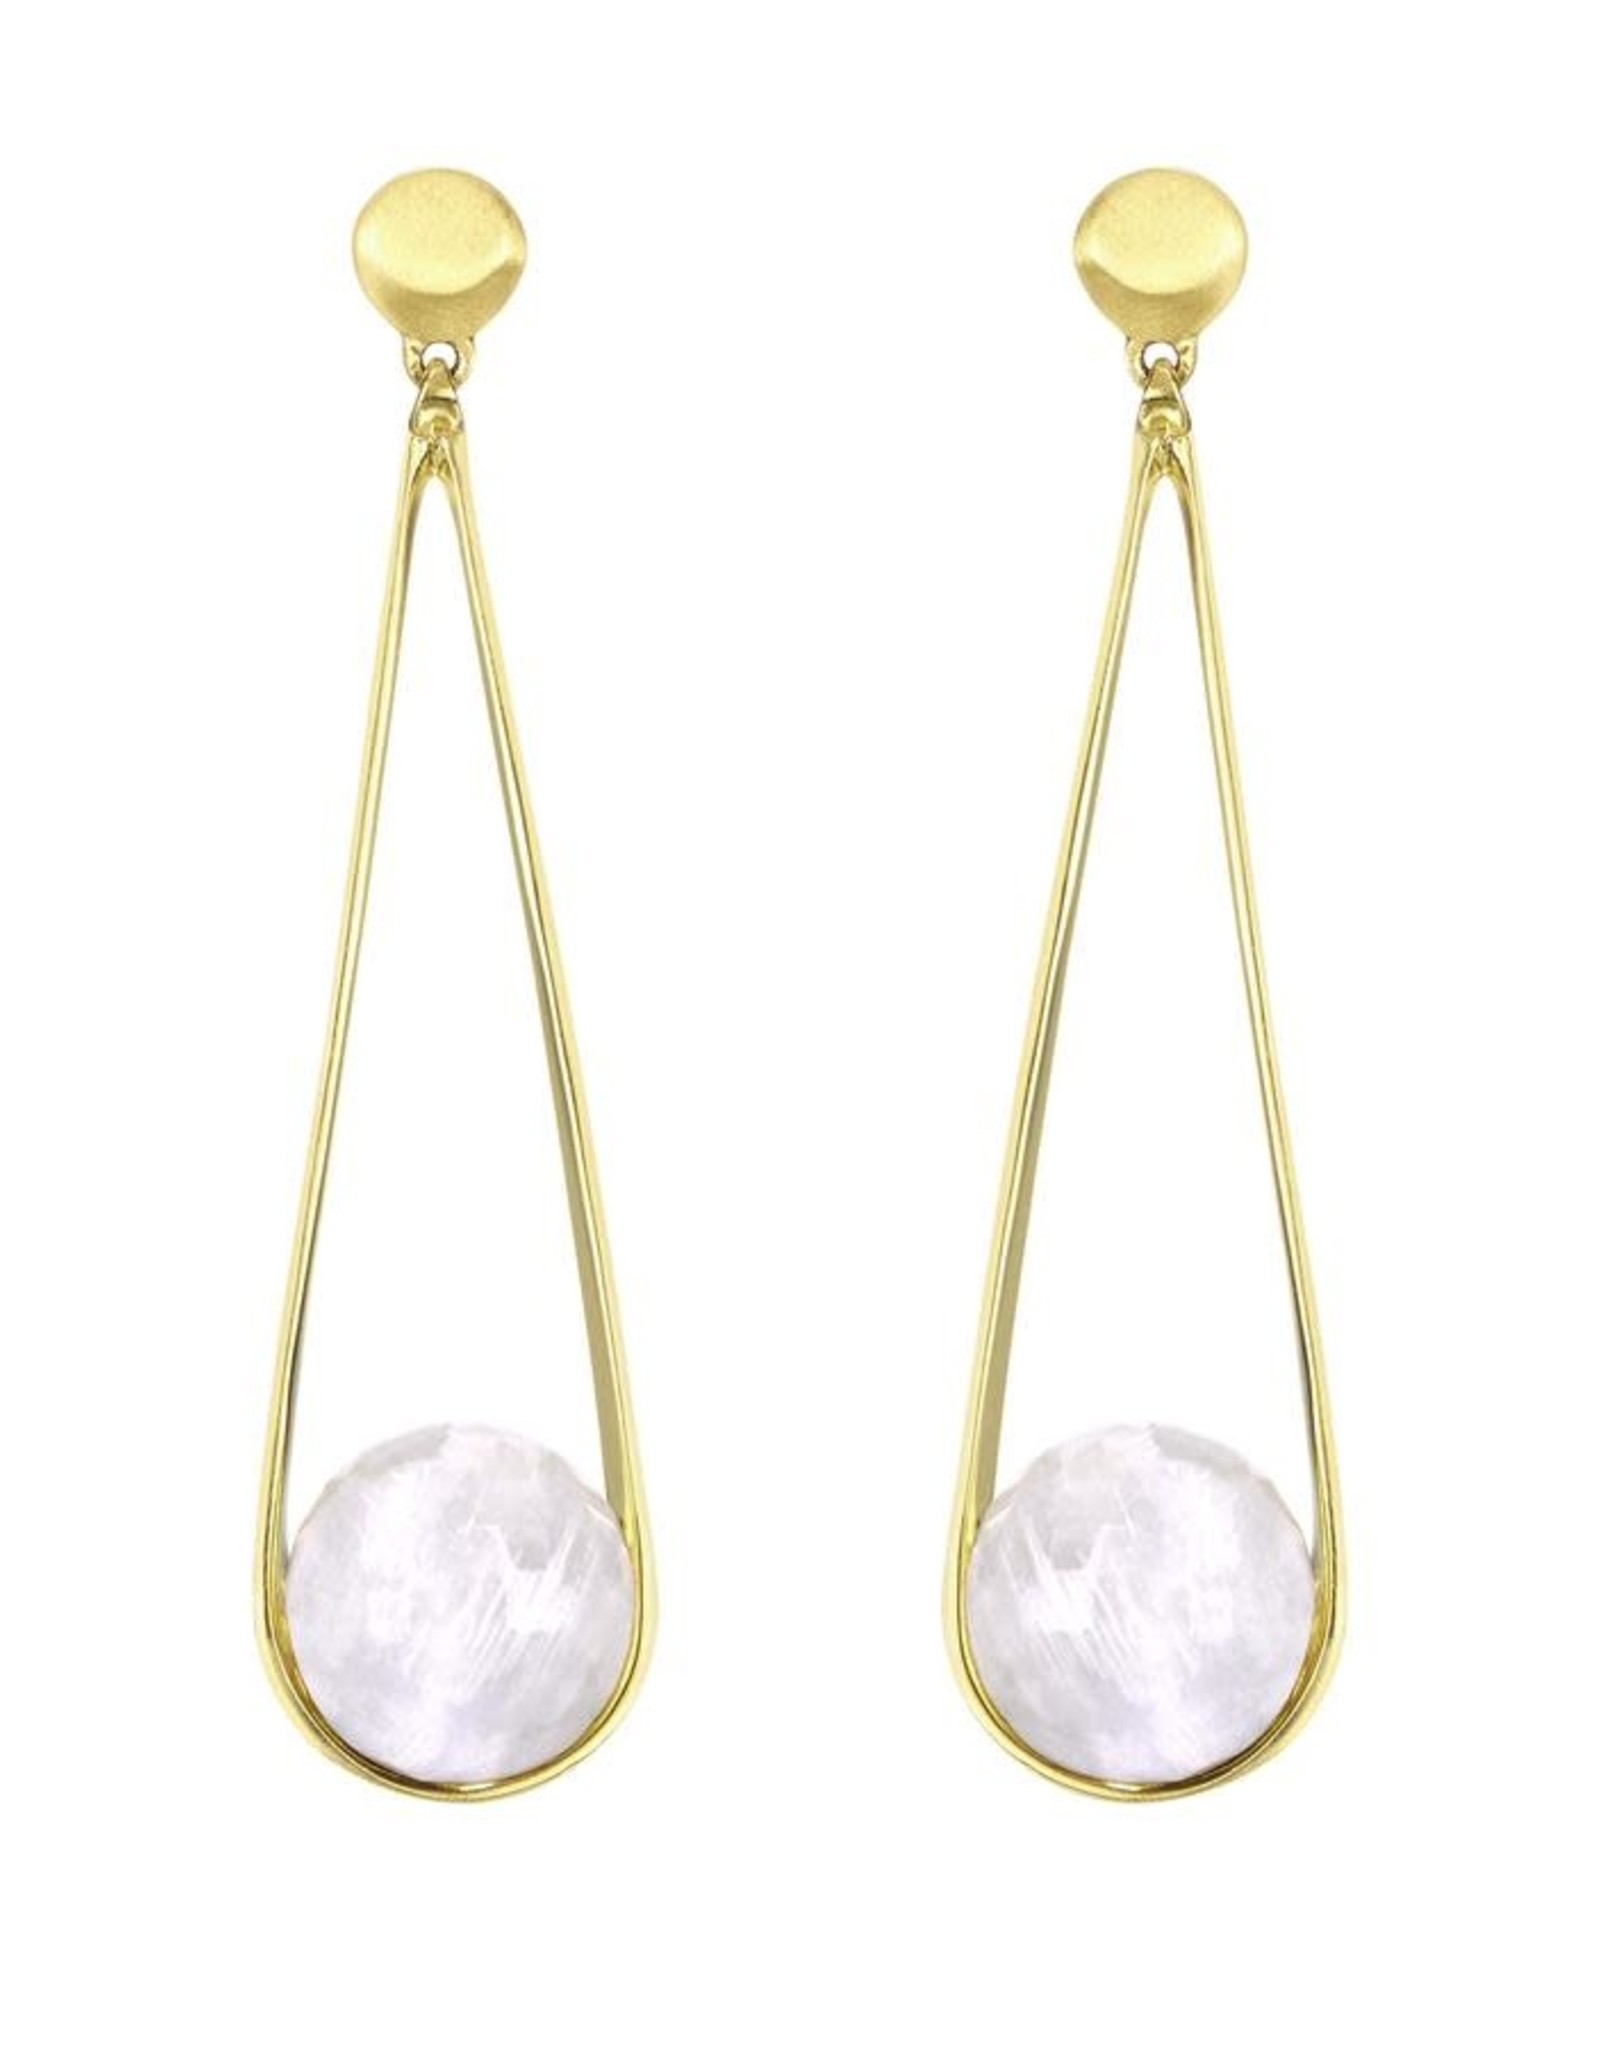 Dean Davidson DD Ipanema Earrings - Rainbow Moonstone